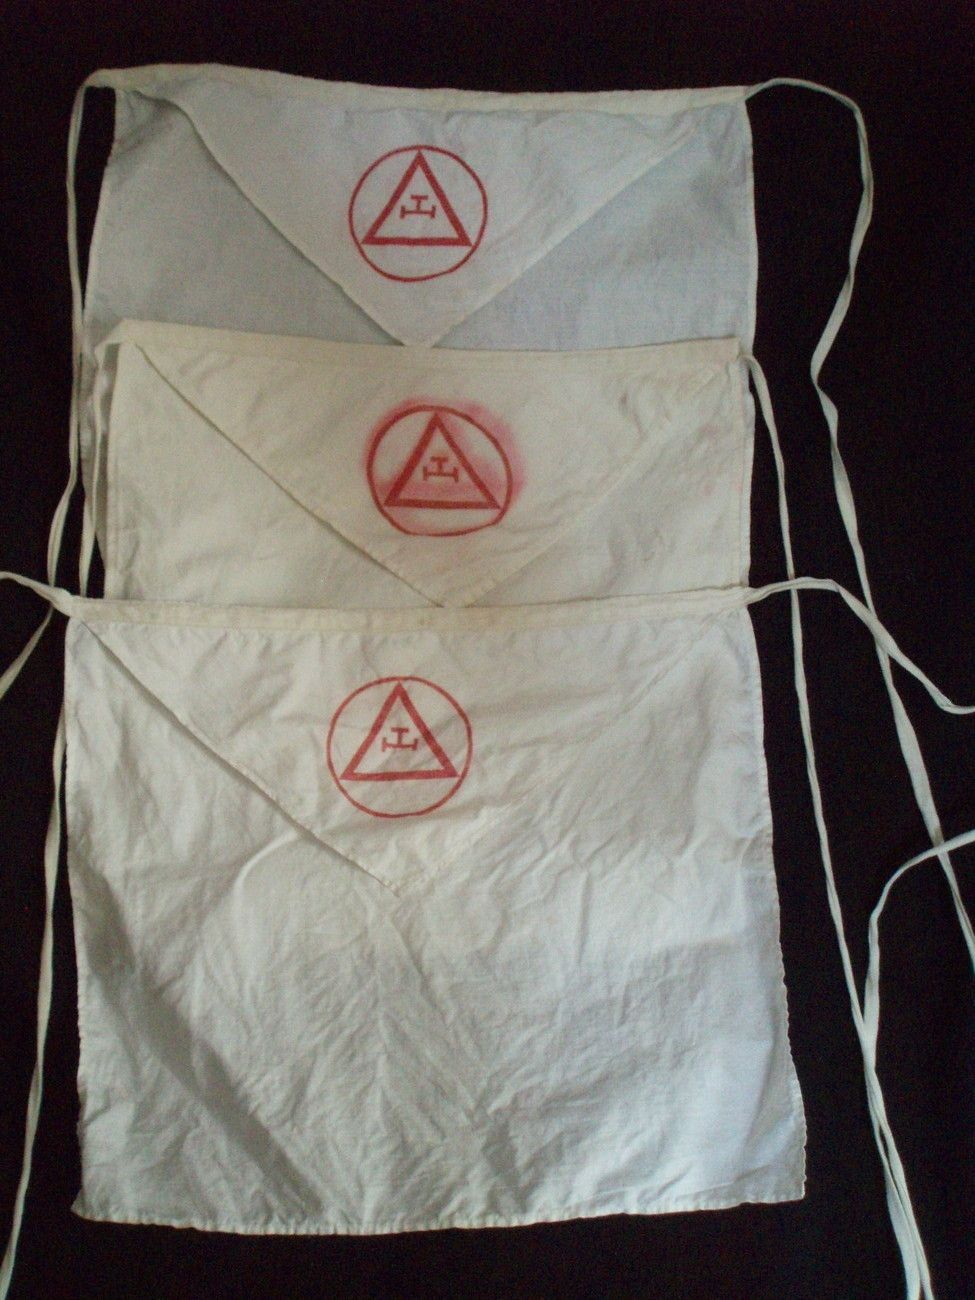 3 Masonic Aprons Templar Knights 1850s Triple Tau Antique Proof That